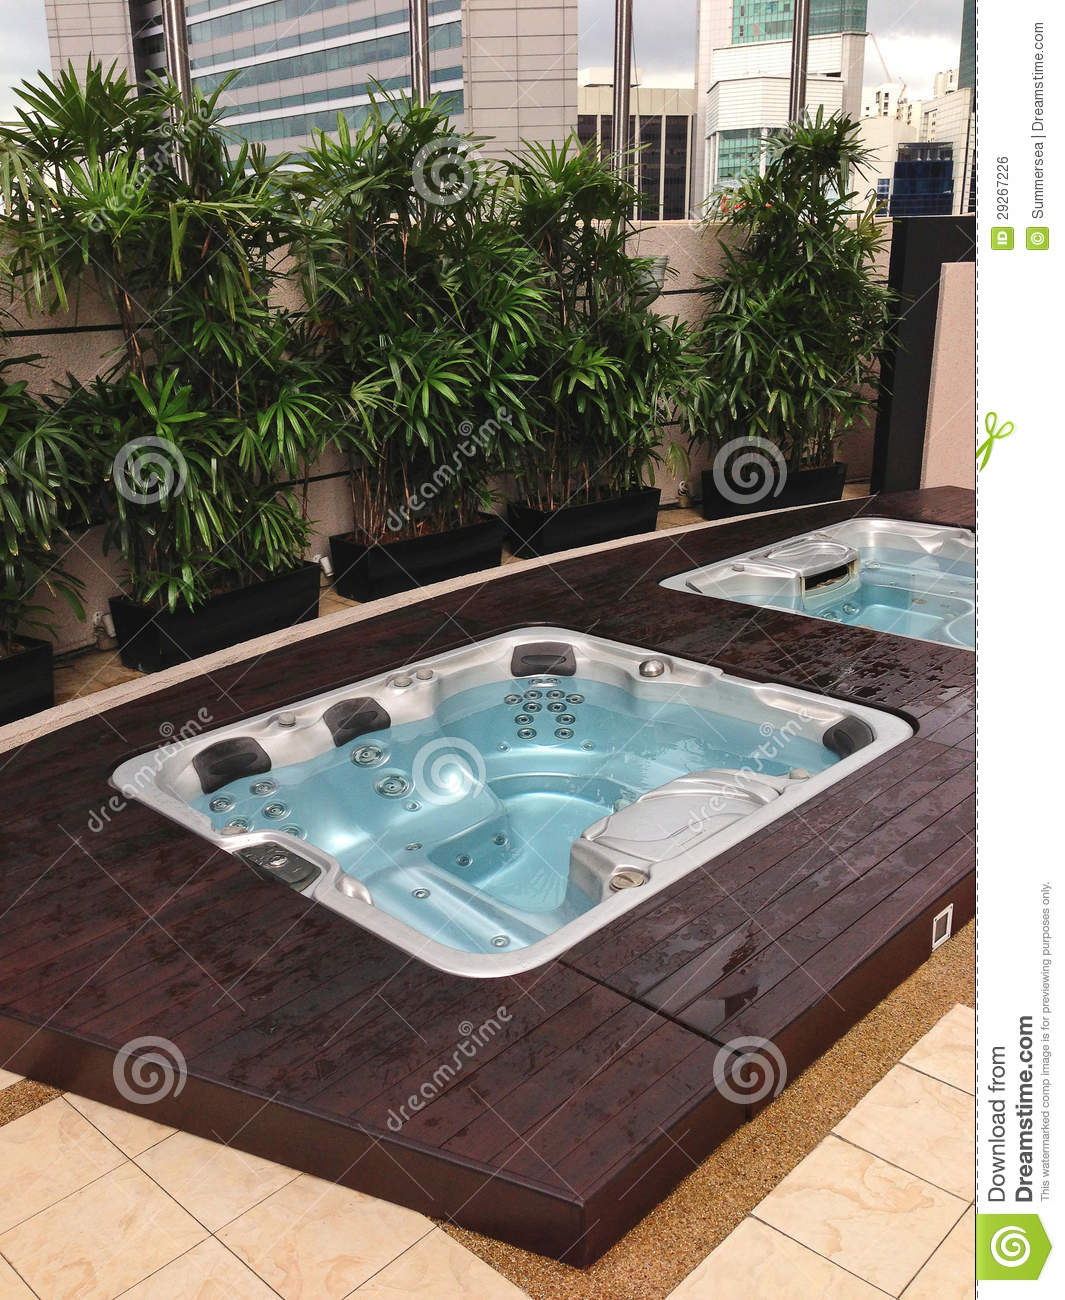 Outdoor jacuzzi in the city stock photo image 29267226 for Jacuzzi enterre exterieur